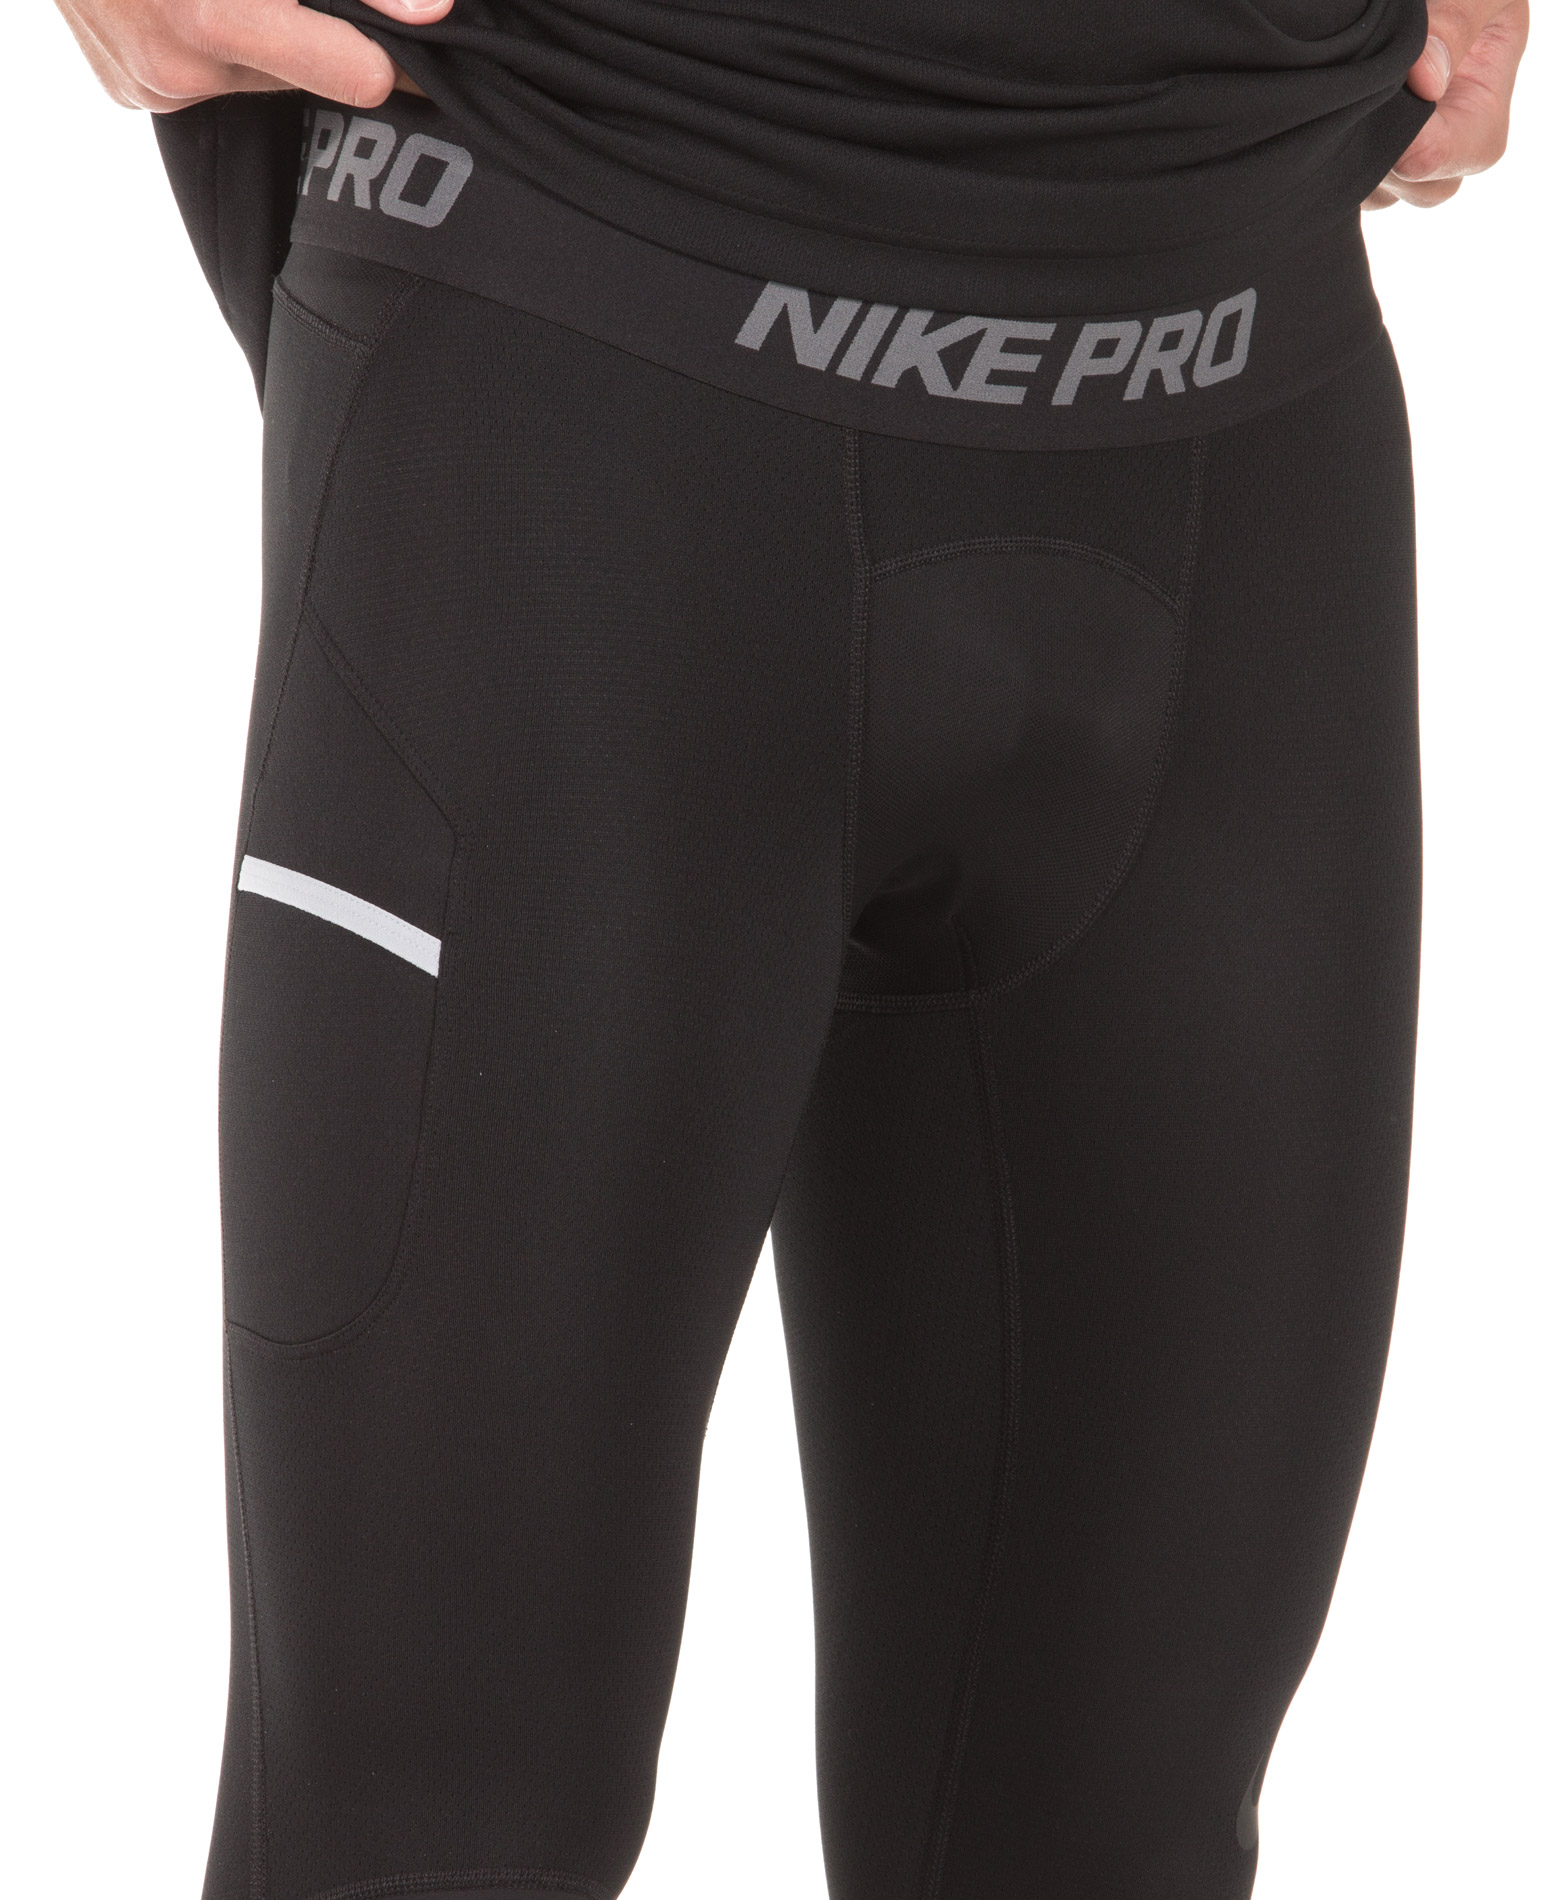 NIKE M NP DRY TIGHT 3QY BBALL 925821-010 Μαύρο